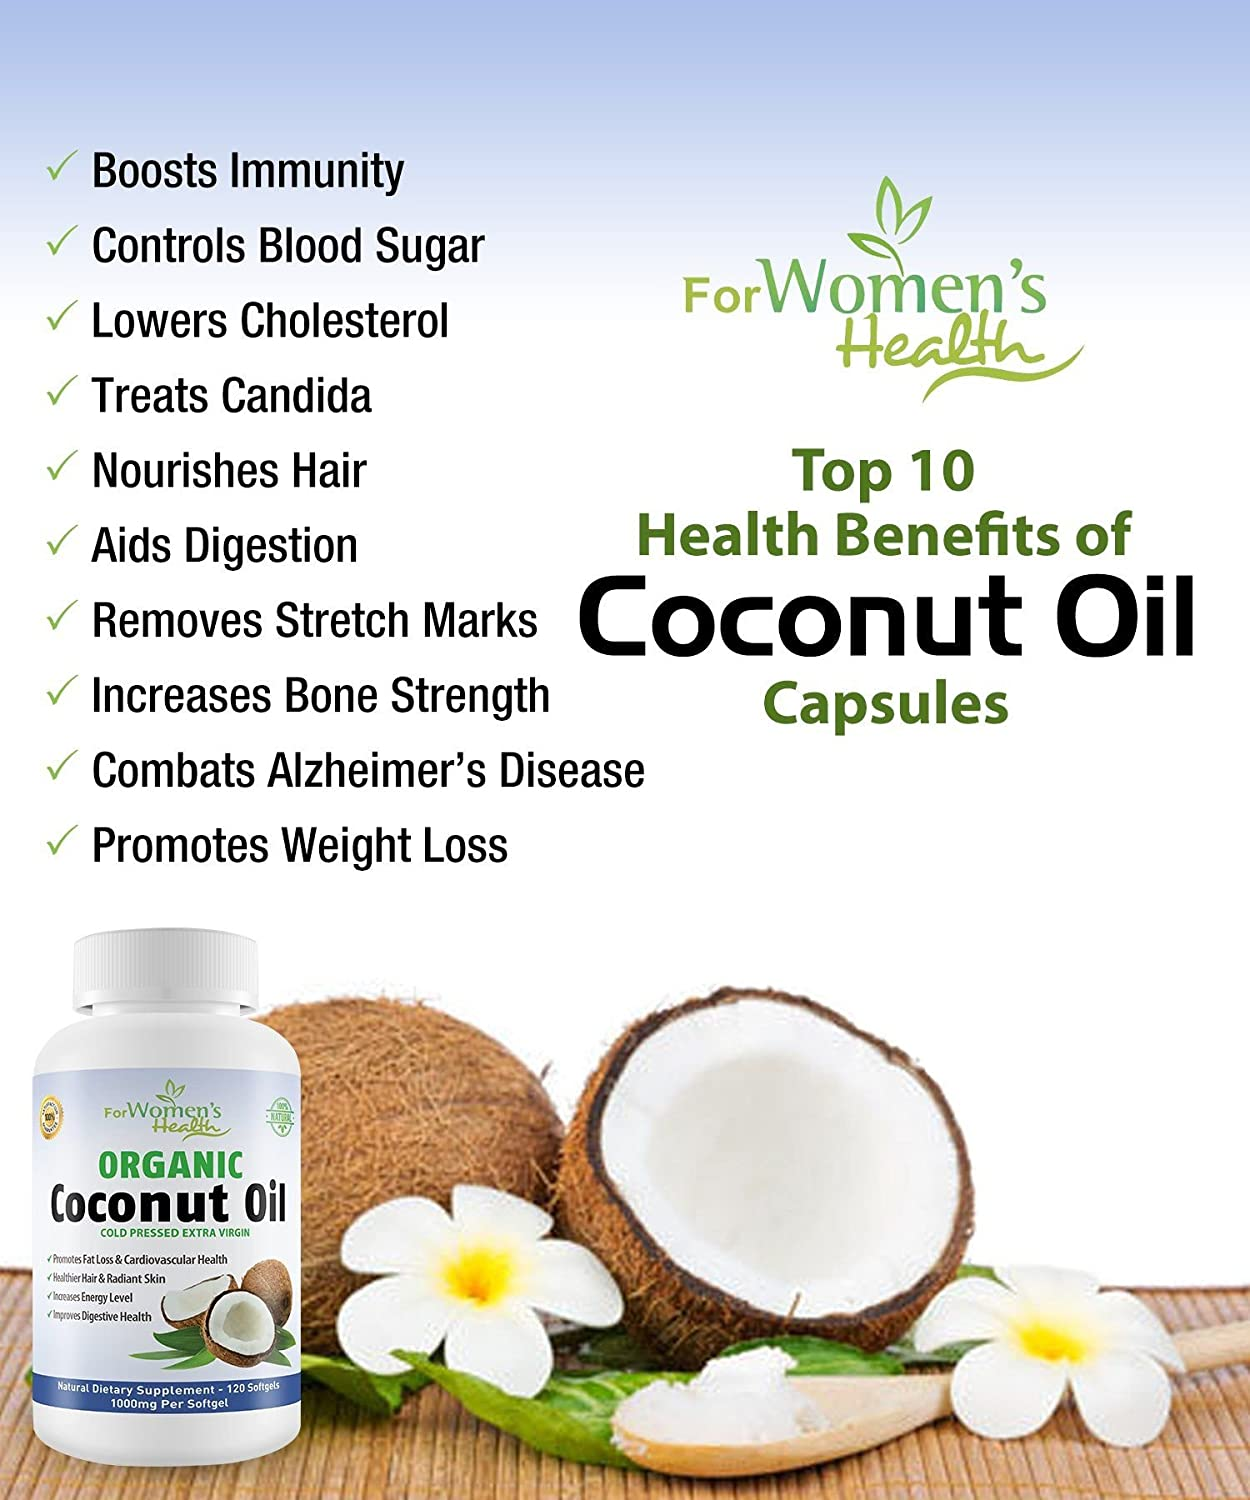 Amazon.com: Organic Coconut Oil Capsules - Extra Virgin Coconut Oil Pills For Weight Loss, Healthy Hair & Skin - 120 Softgells - 2000 mg Per Serving ...